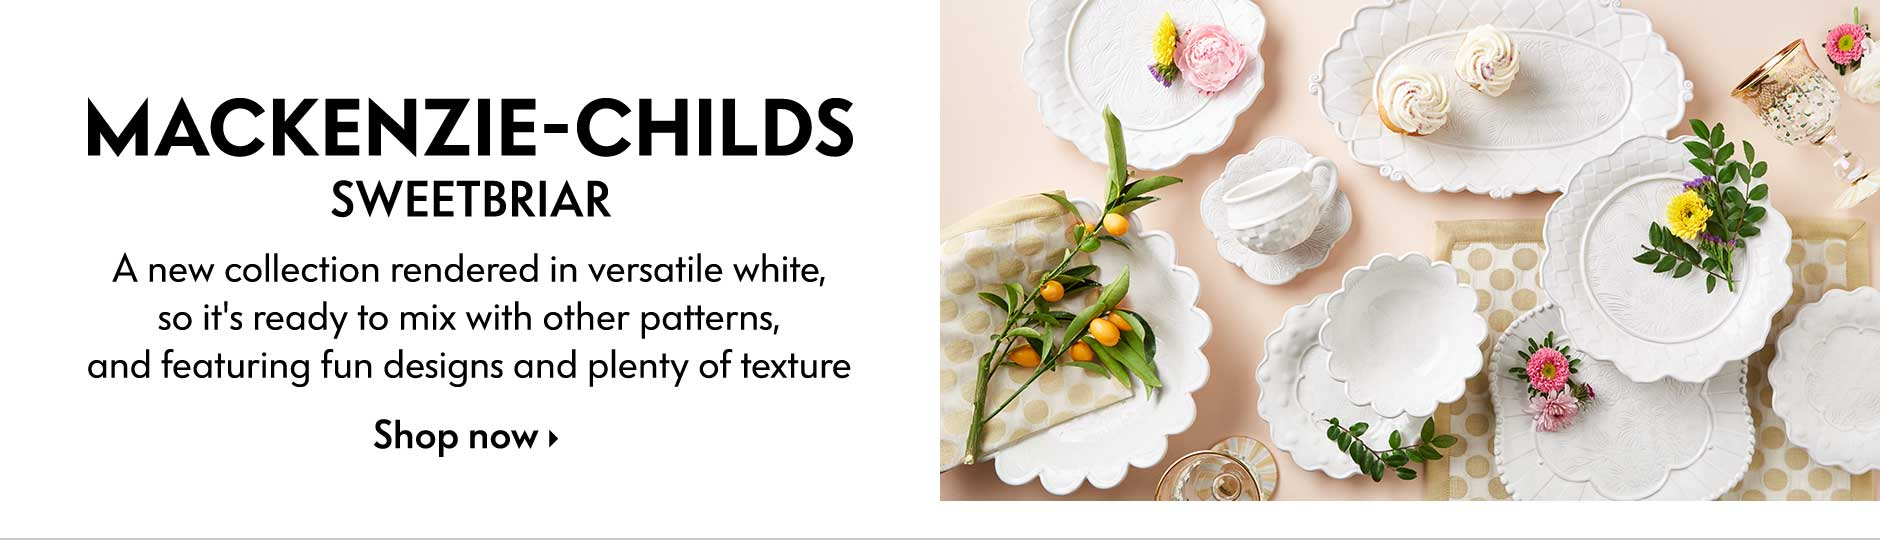 MacKenzie-Childs Sweetbriar - A new collection rendered in versatile white, so it's ready to mix with other patterns, and featuring fun designs and plenty of texture